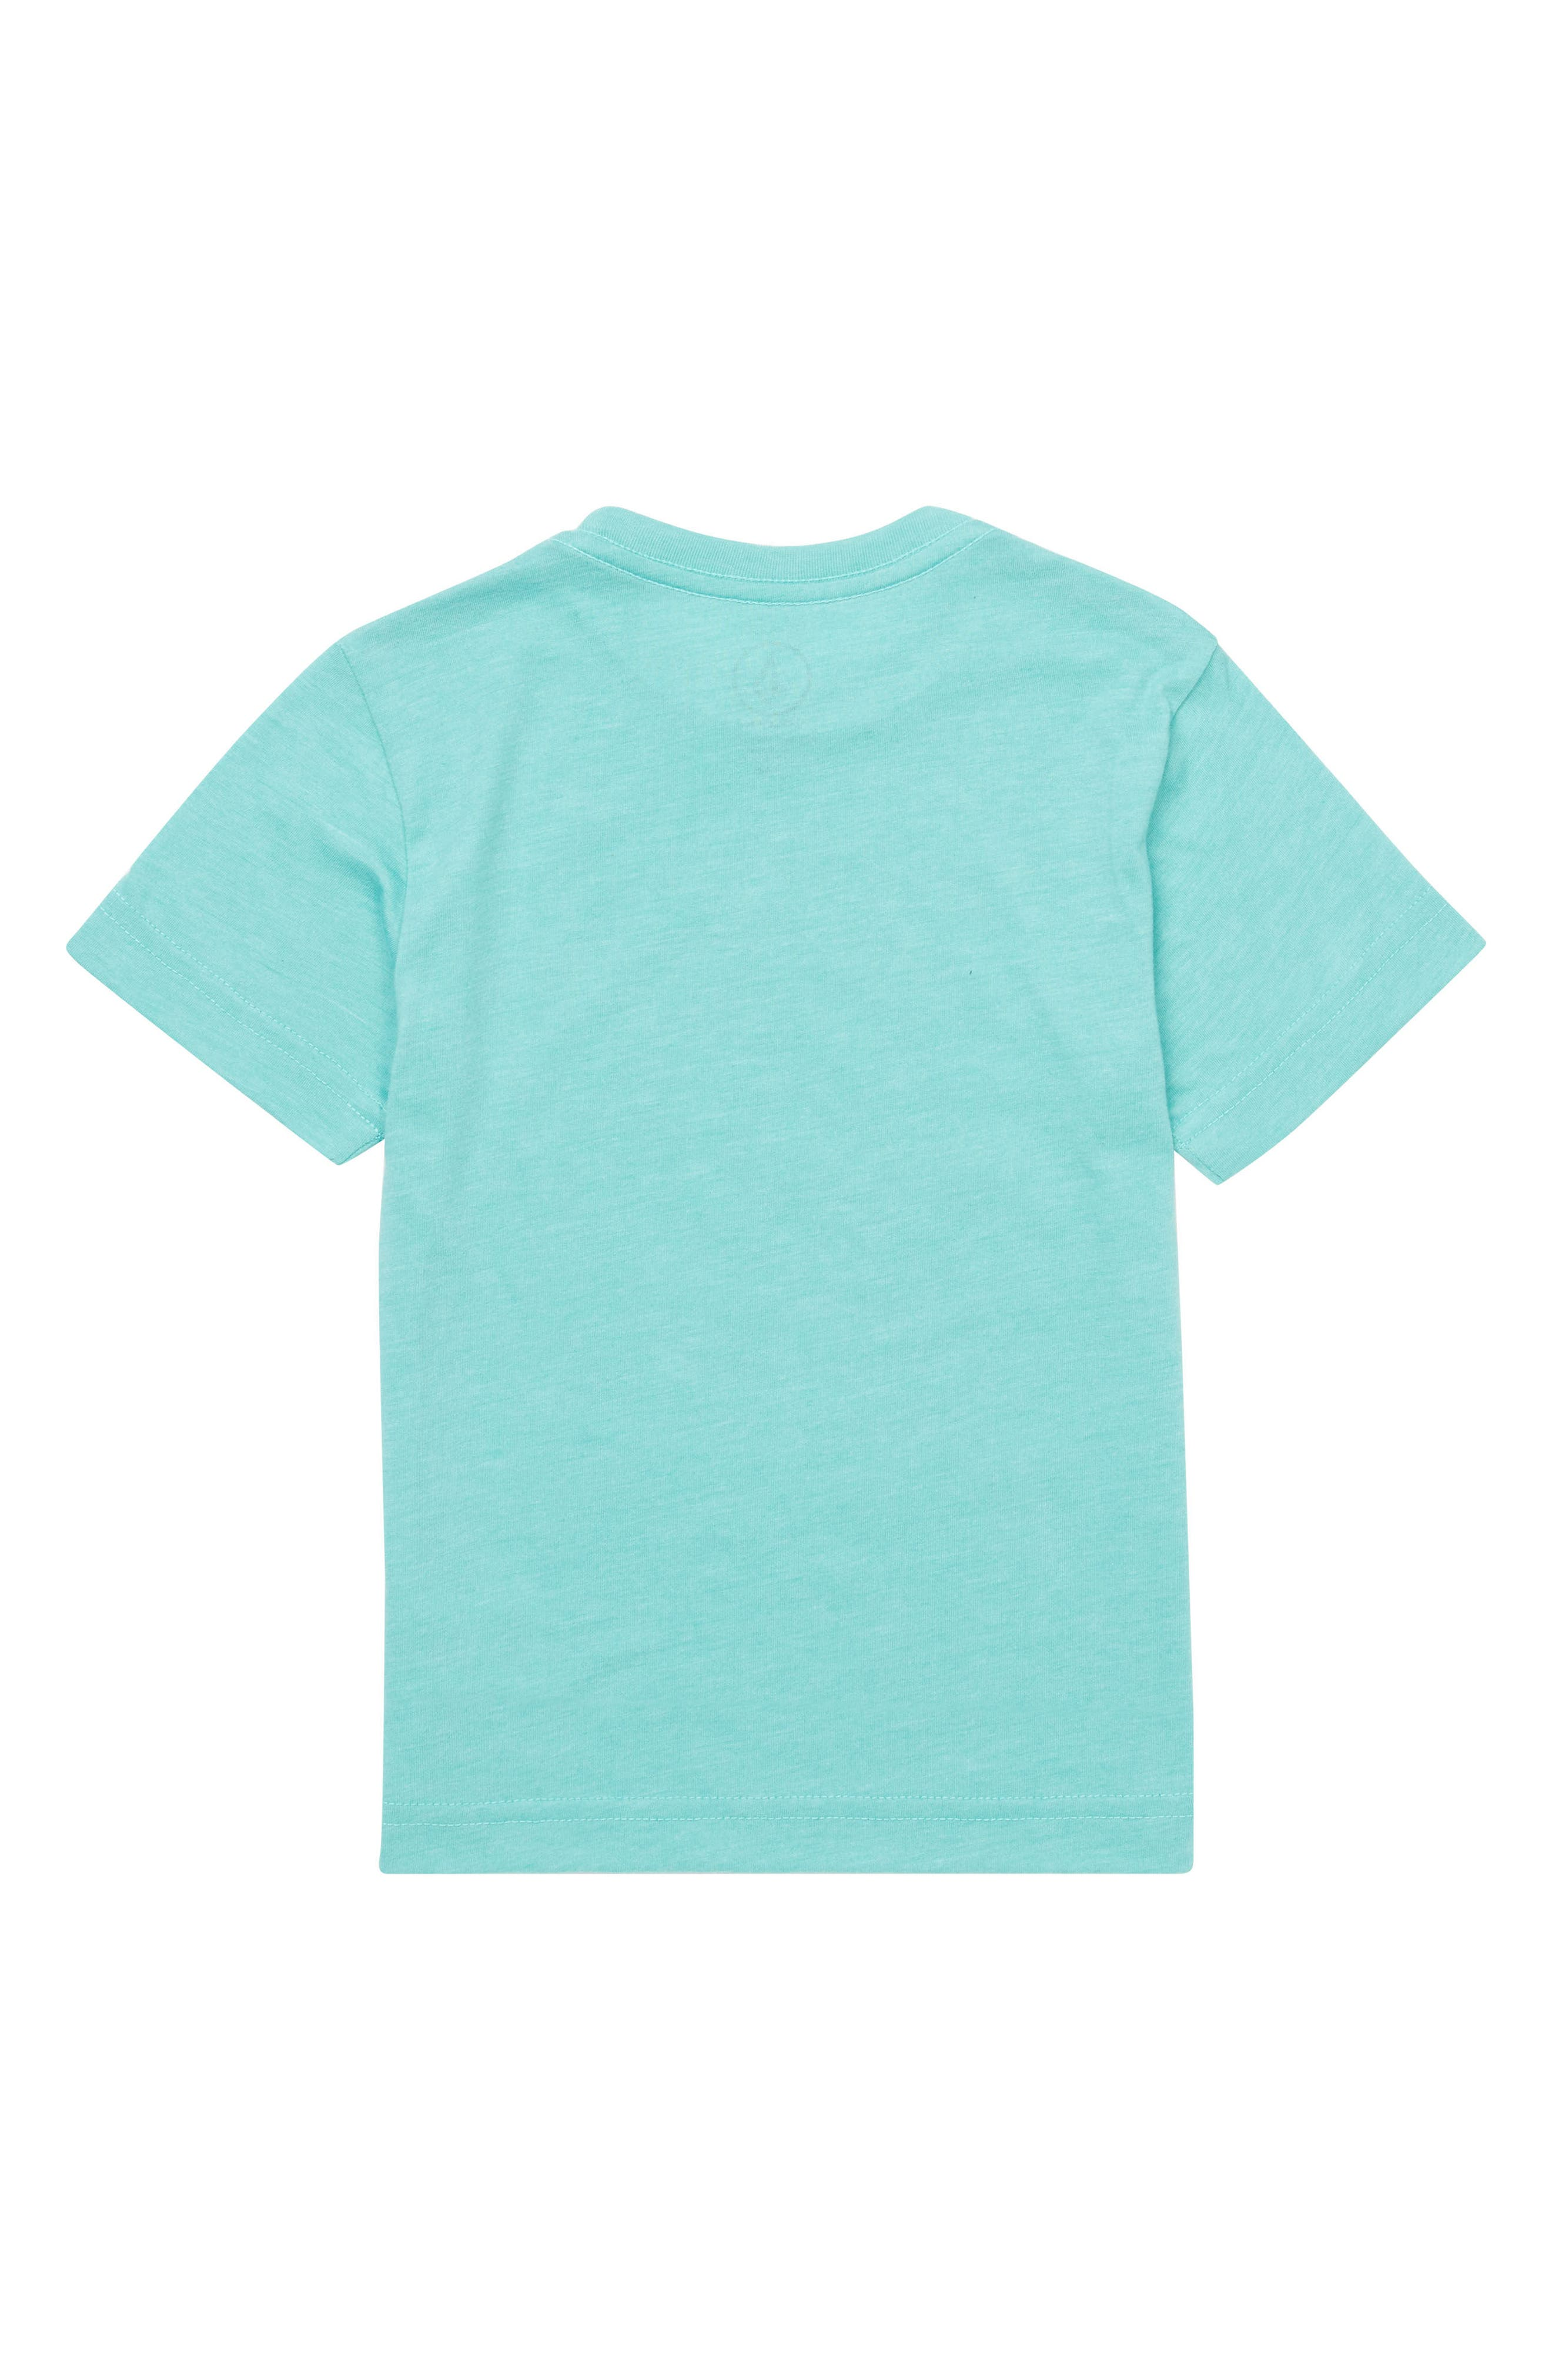 Maag Graphic T-Shirt,                             Alternate thumbnail 2, color,                             Turquoise